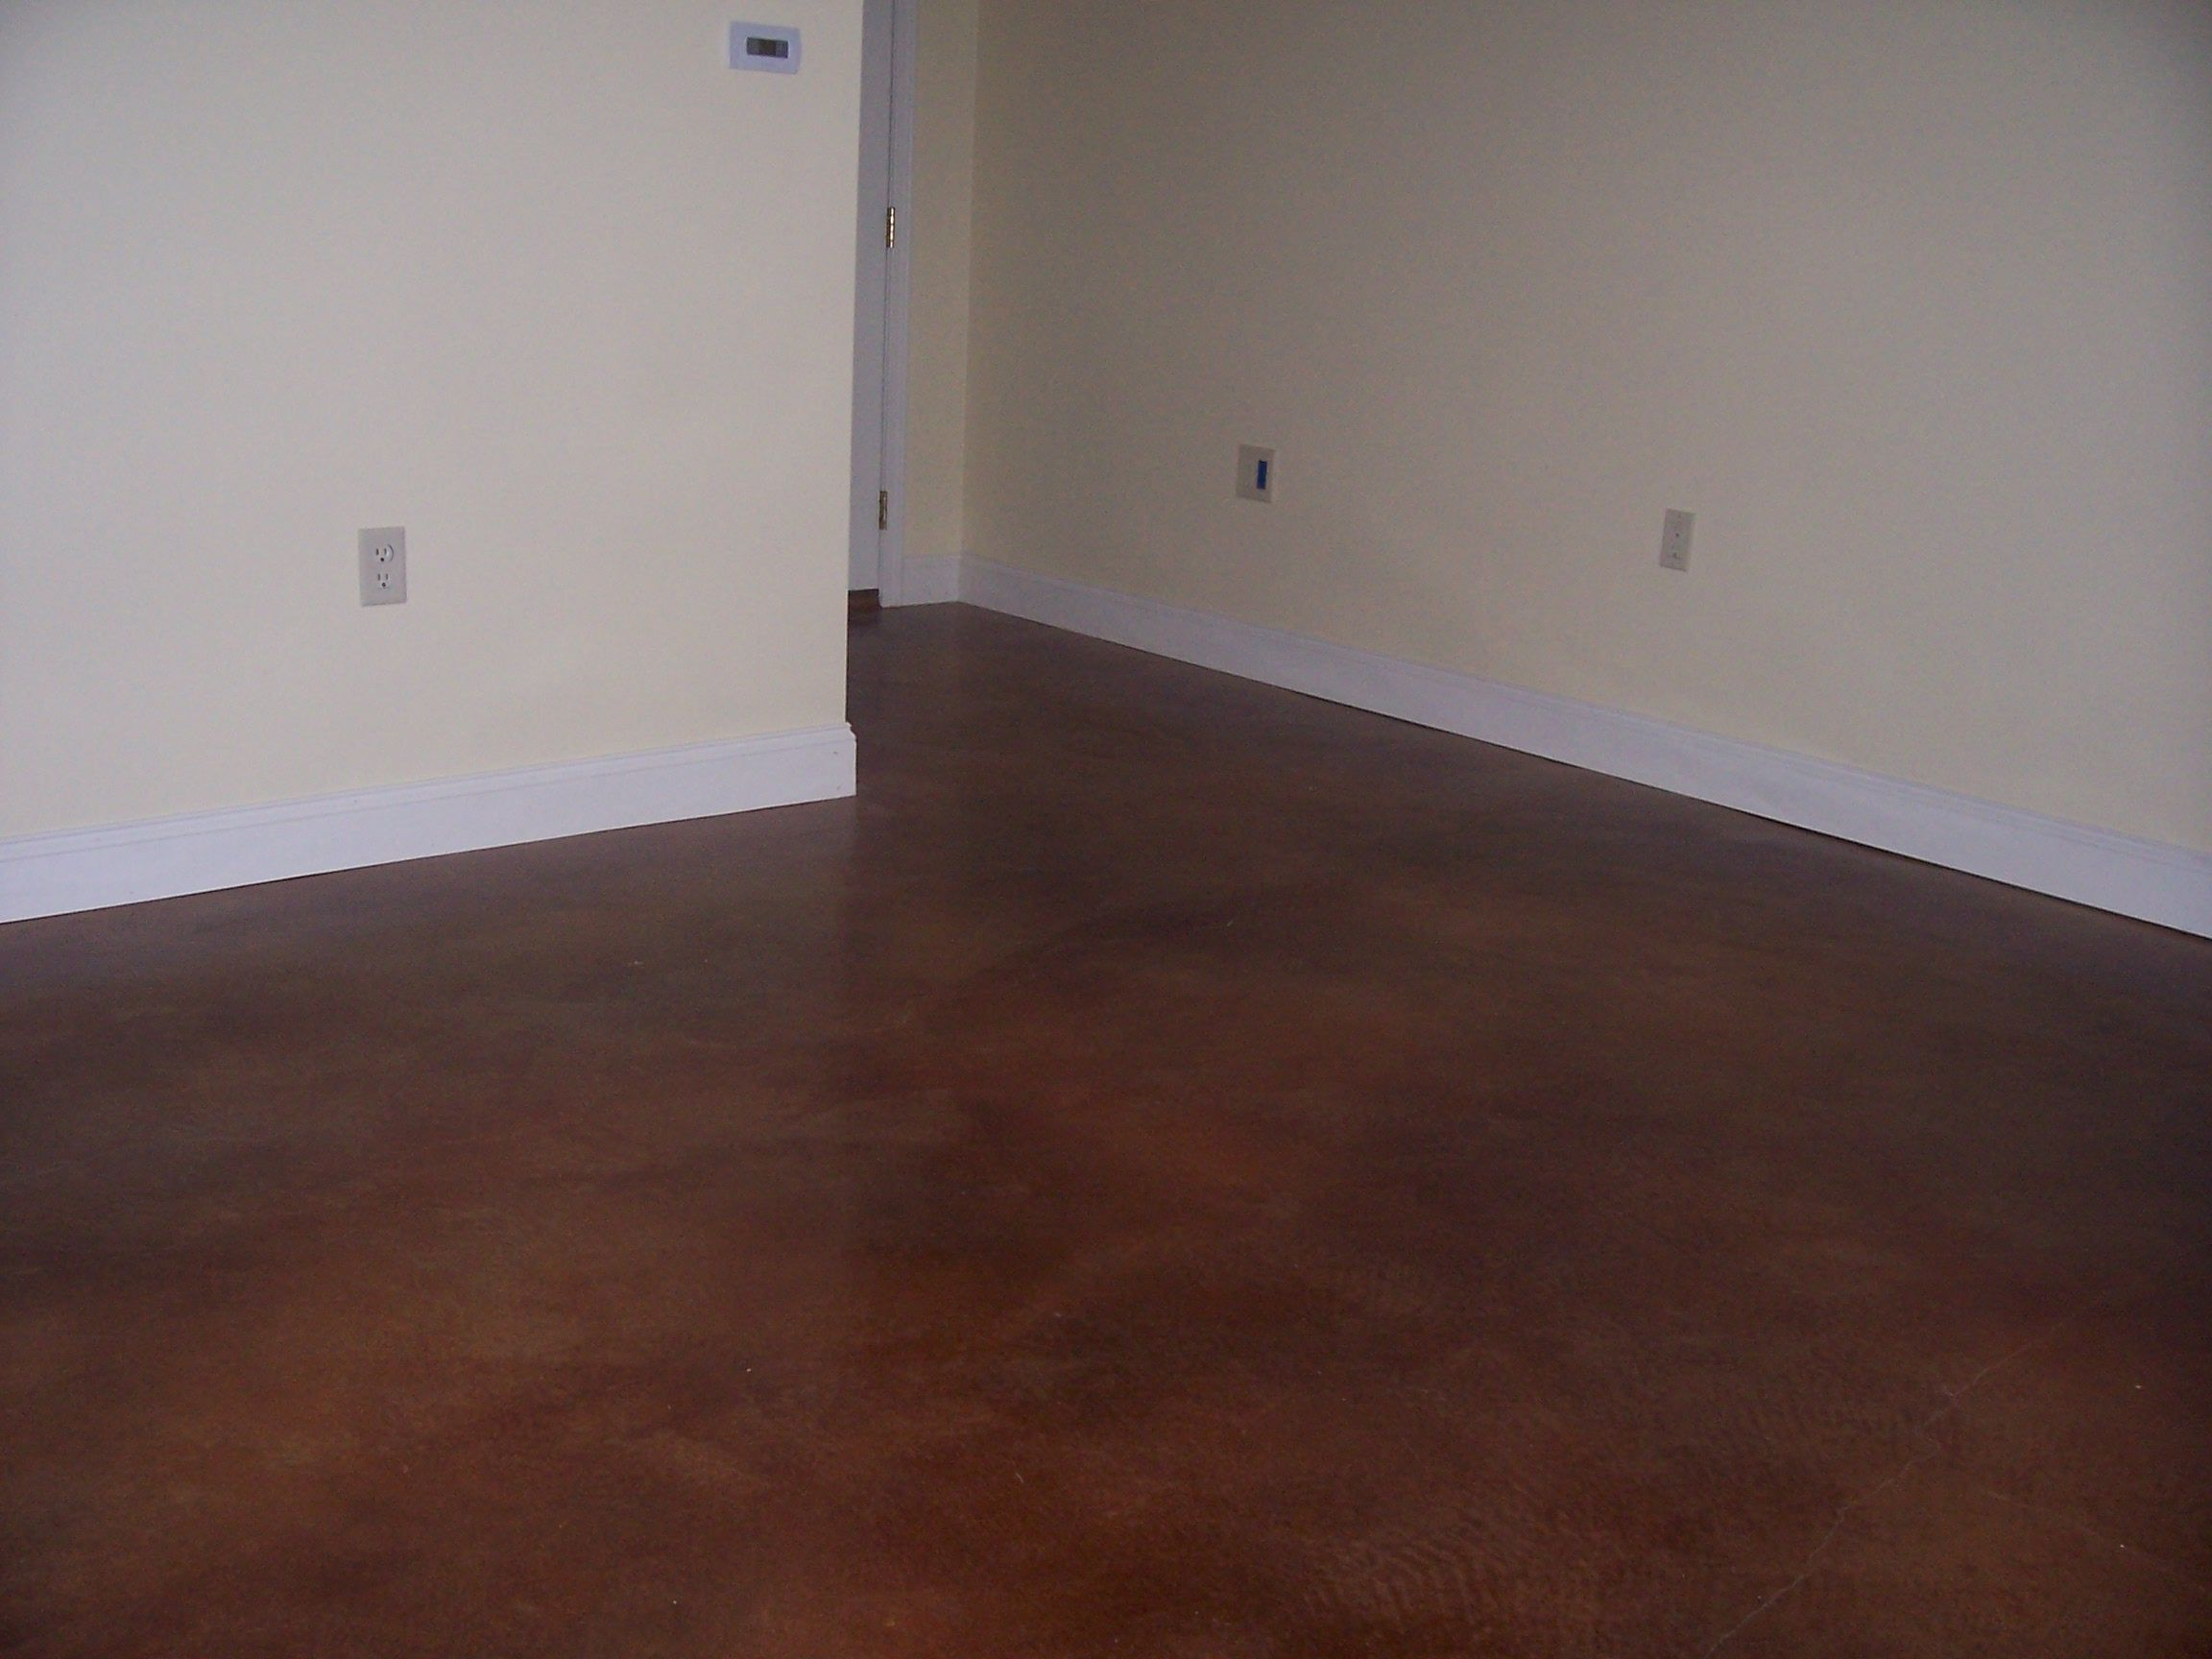 Stained Concrete Floor | Luxuryconcretefloors.com   Acid Stained Concrete  Floors U0026 Countertops